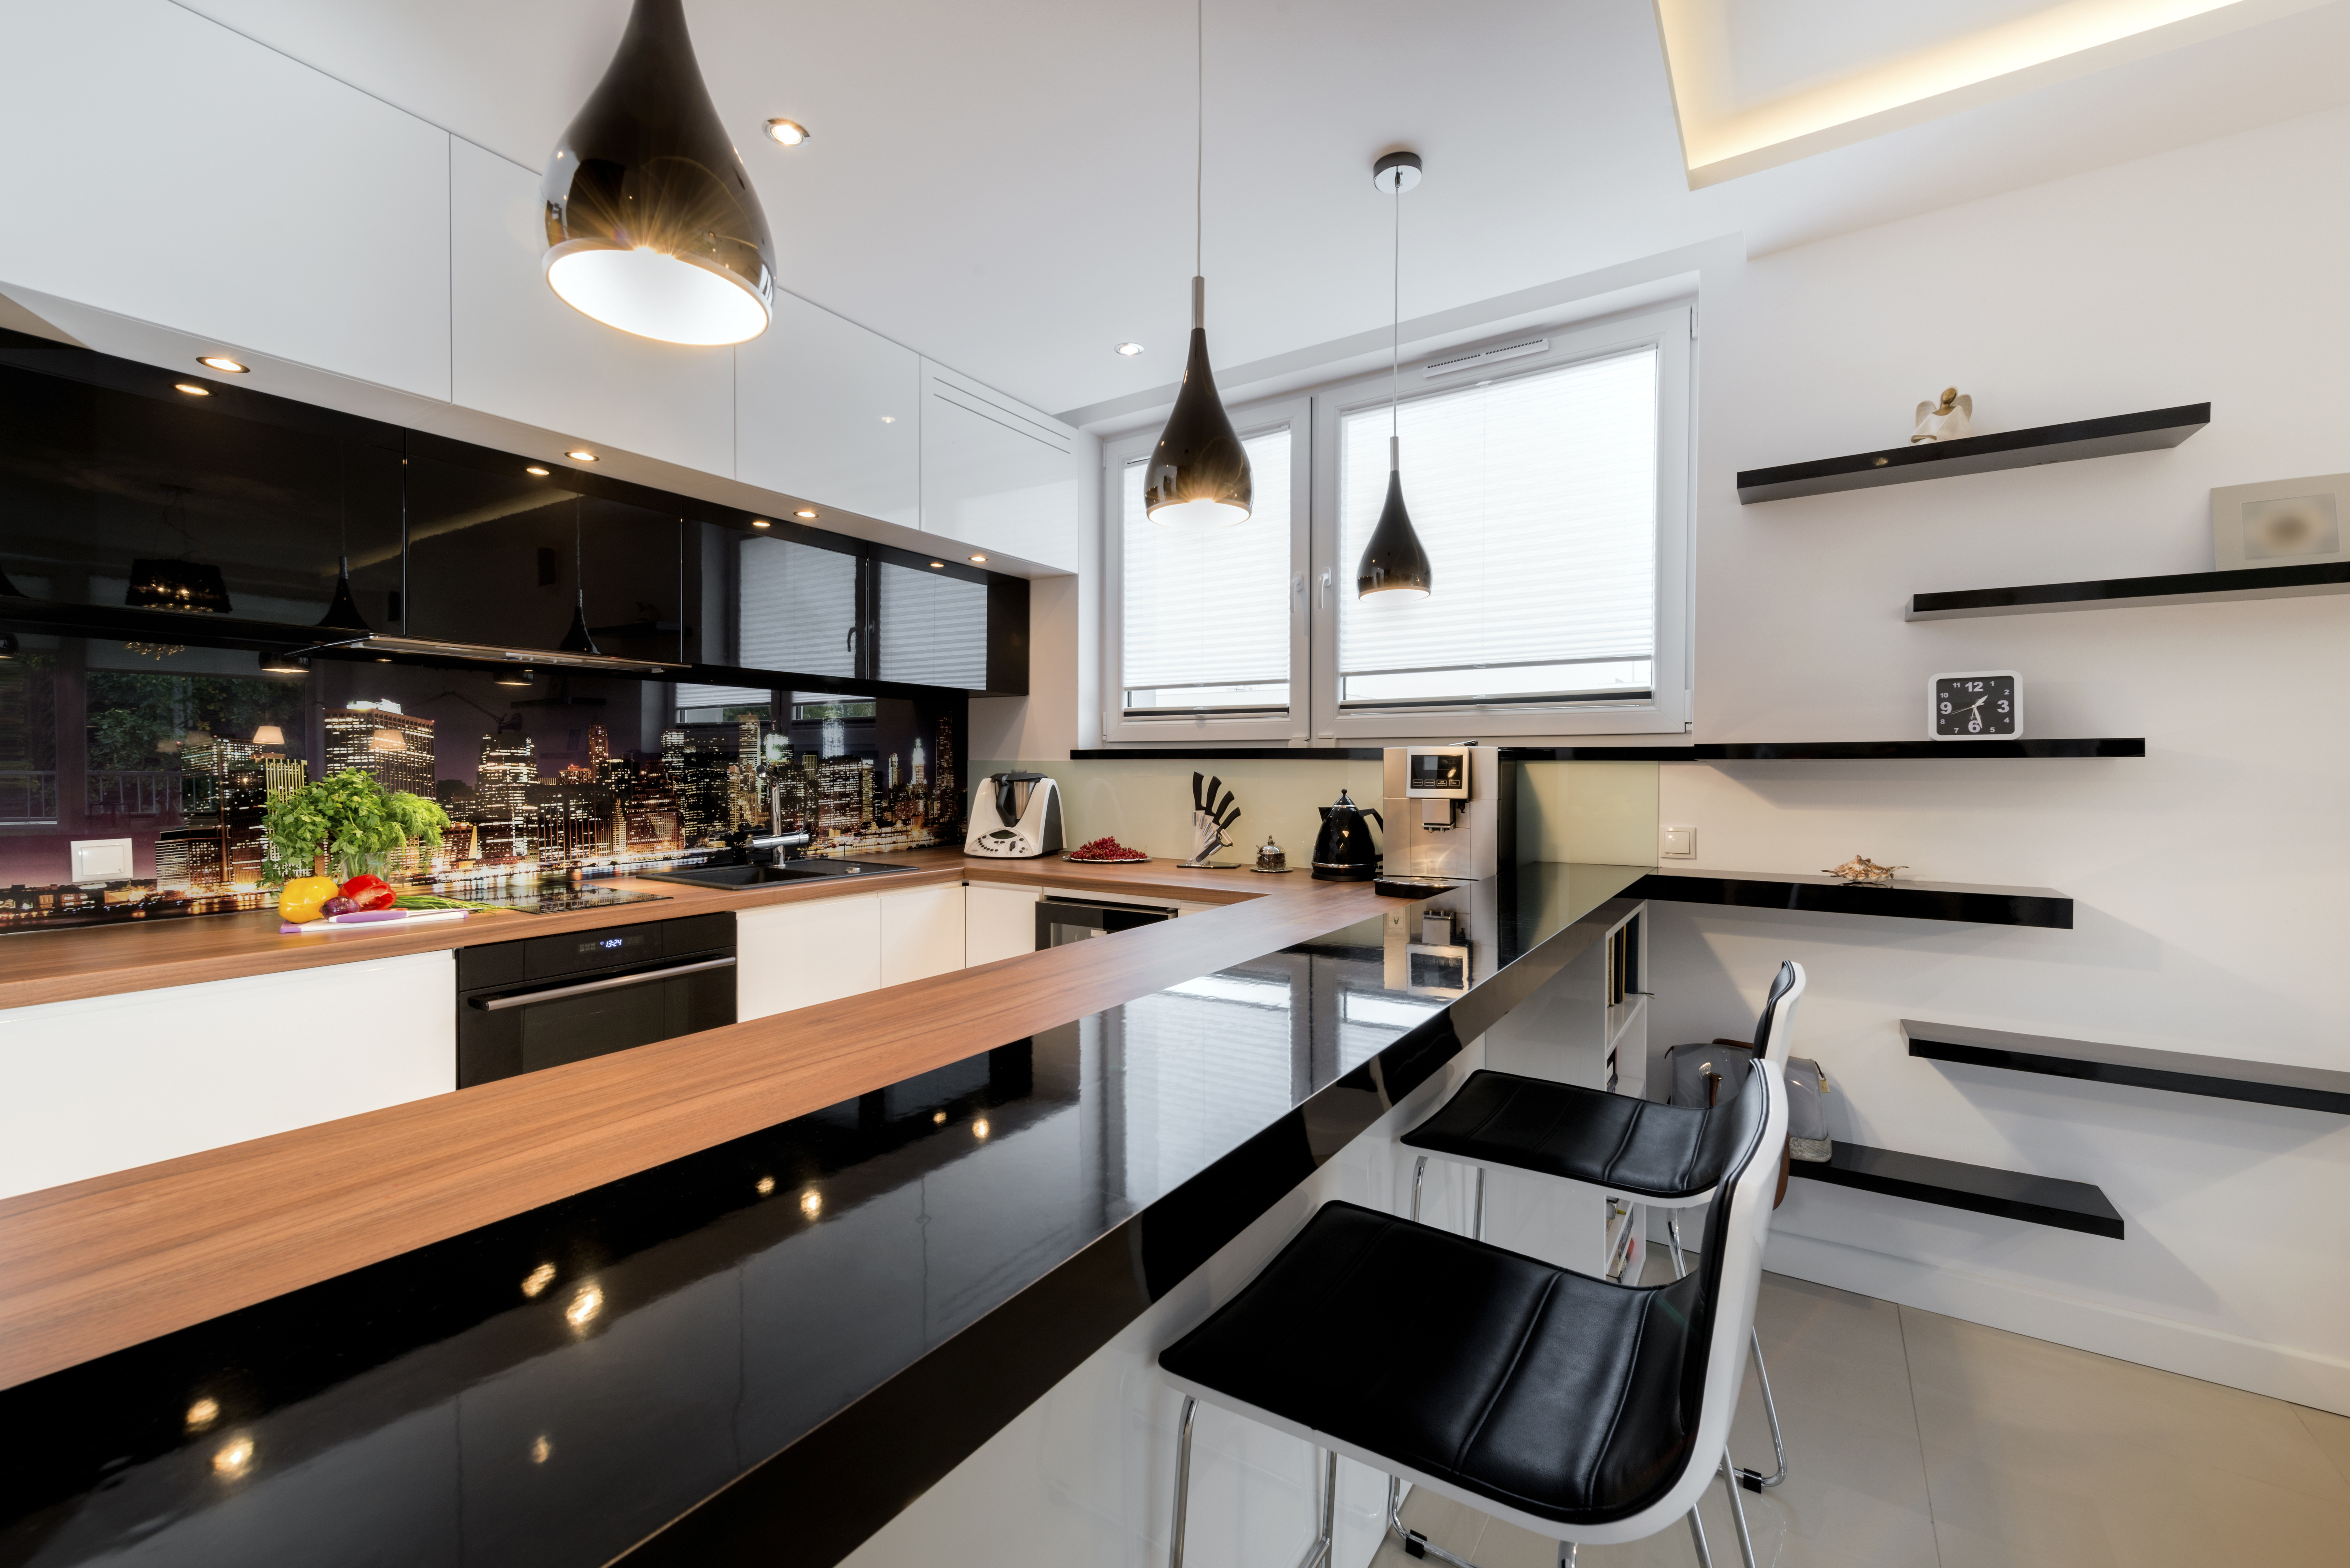 Modern open space luxury kitchen in black and white design